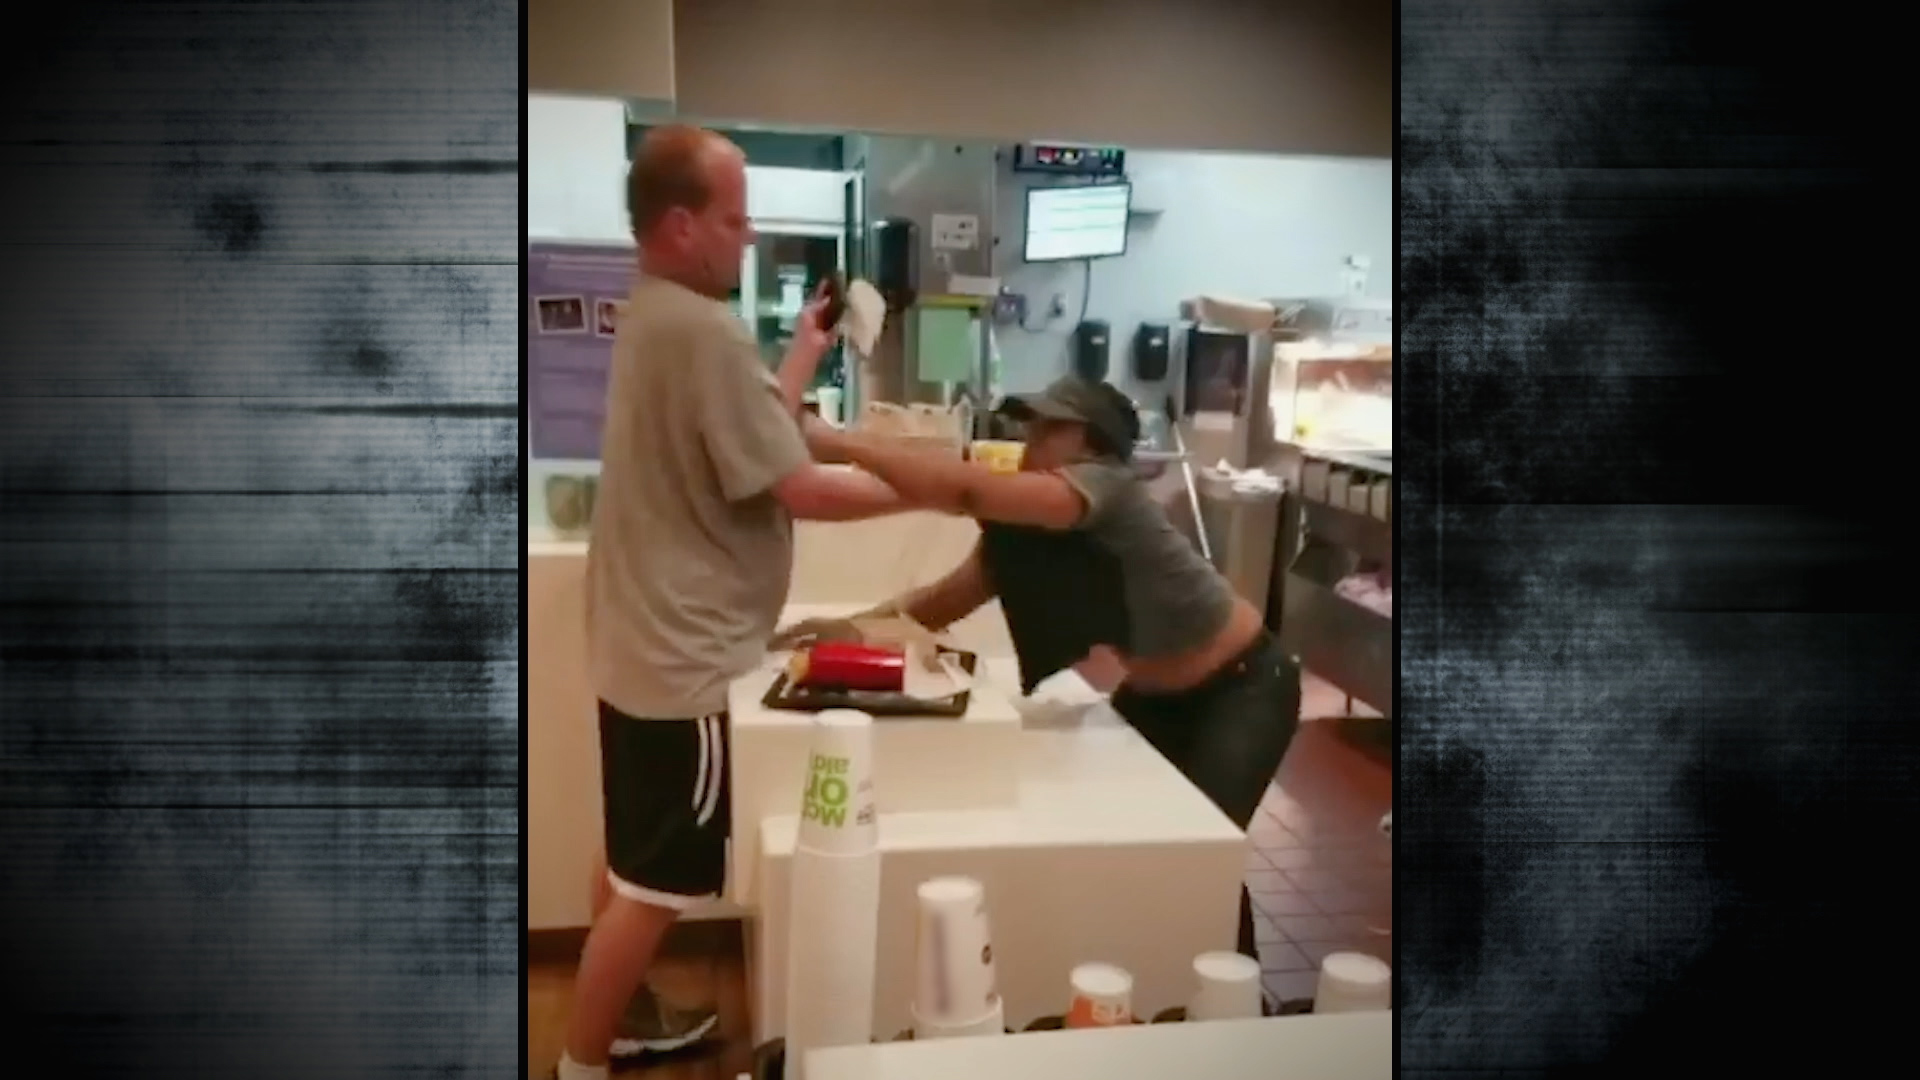 Assaulted at Work